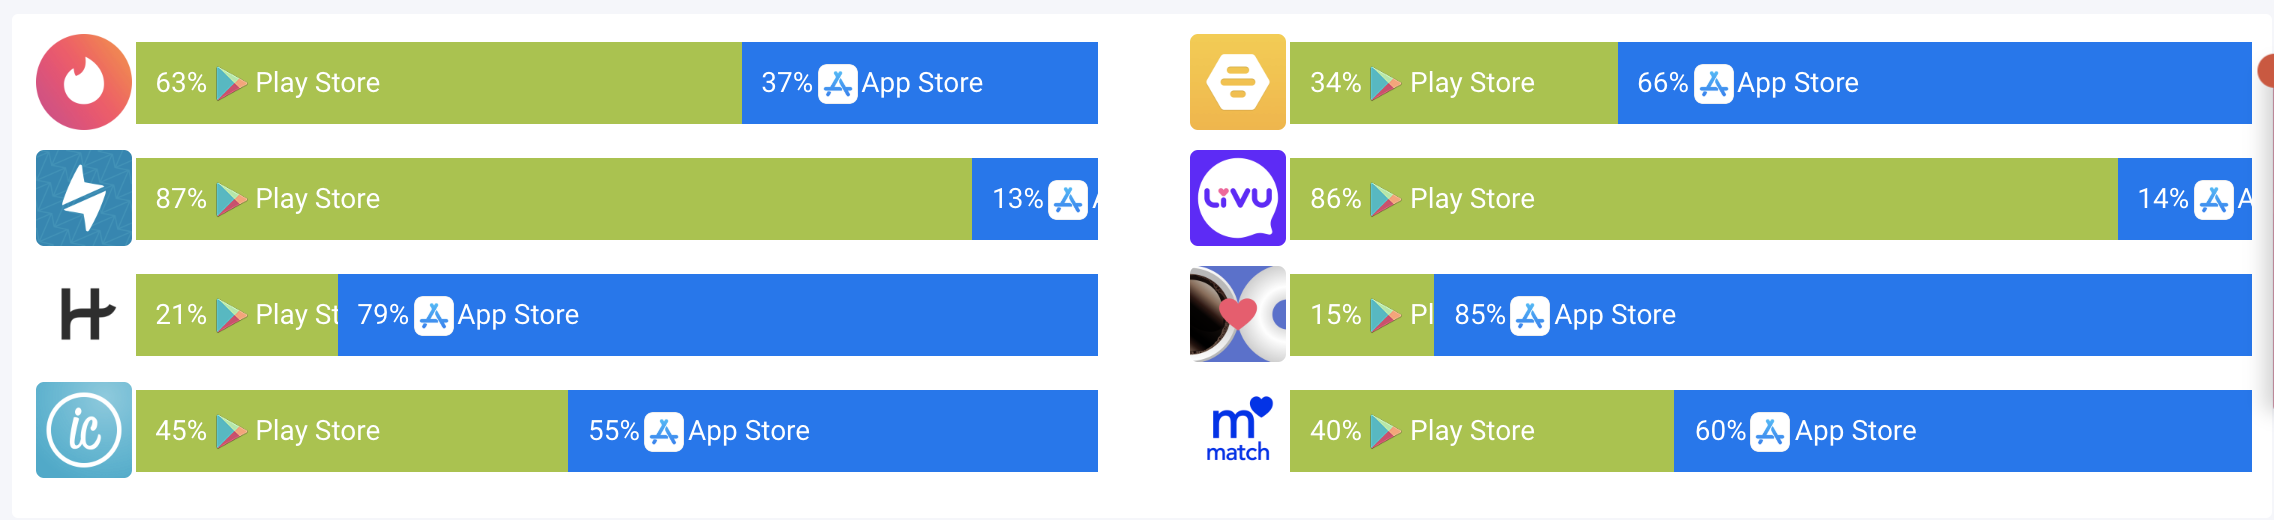 AppTweak: Share of downloads from the App and Play Store for each app.